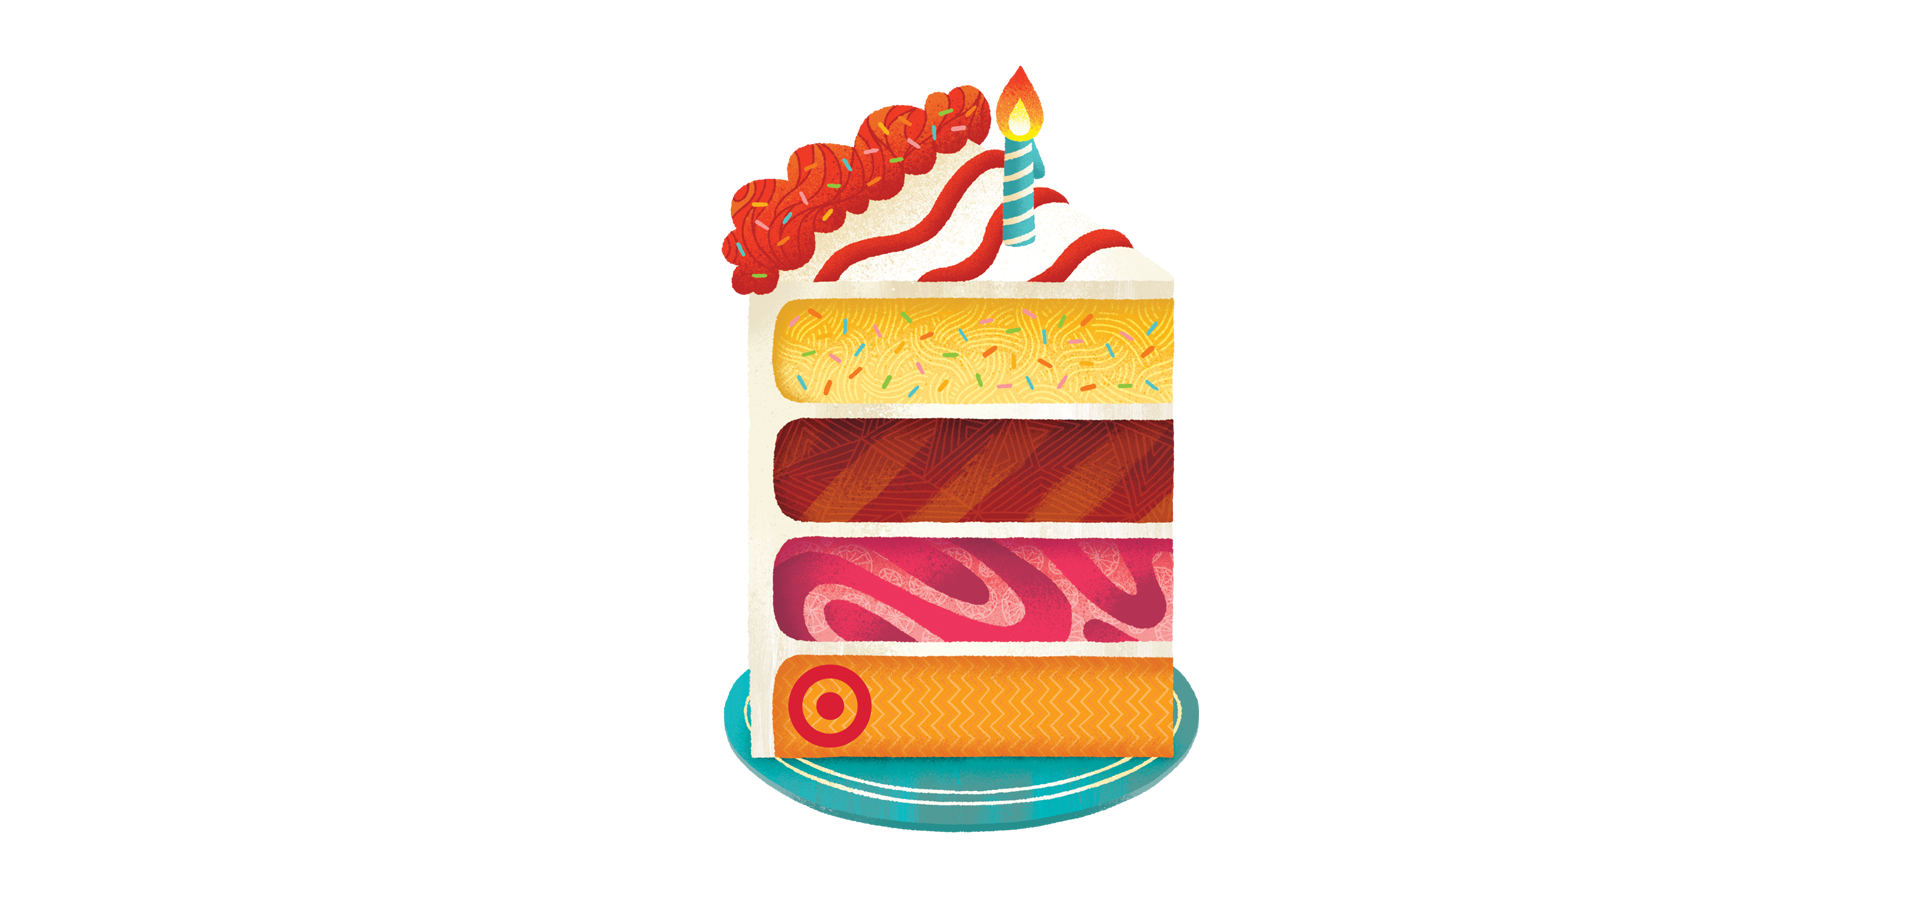 Target Birthday Cake Gift Card Illustration